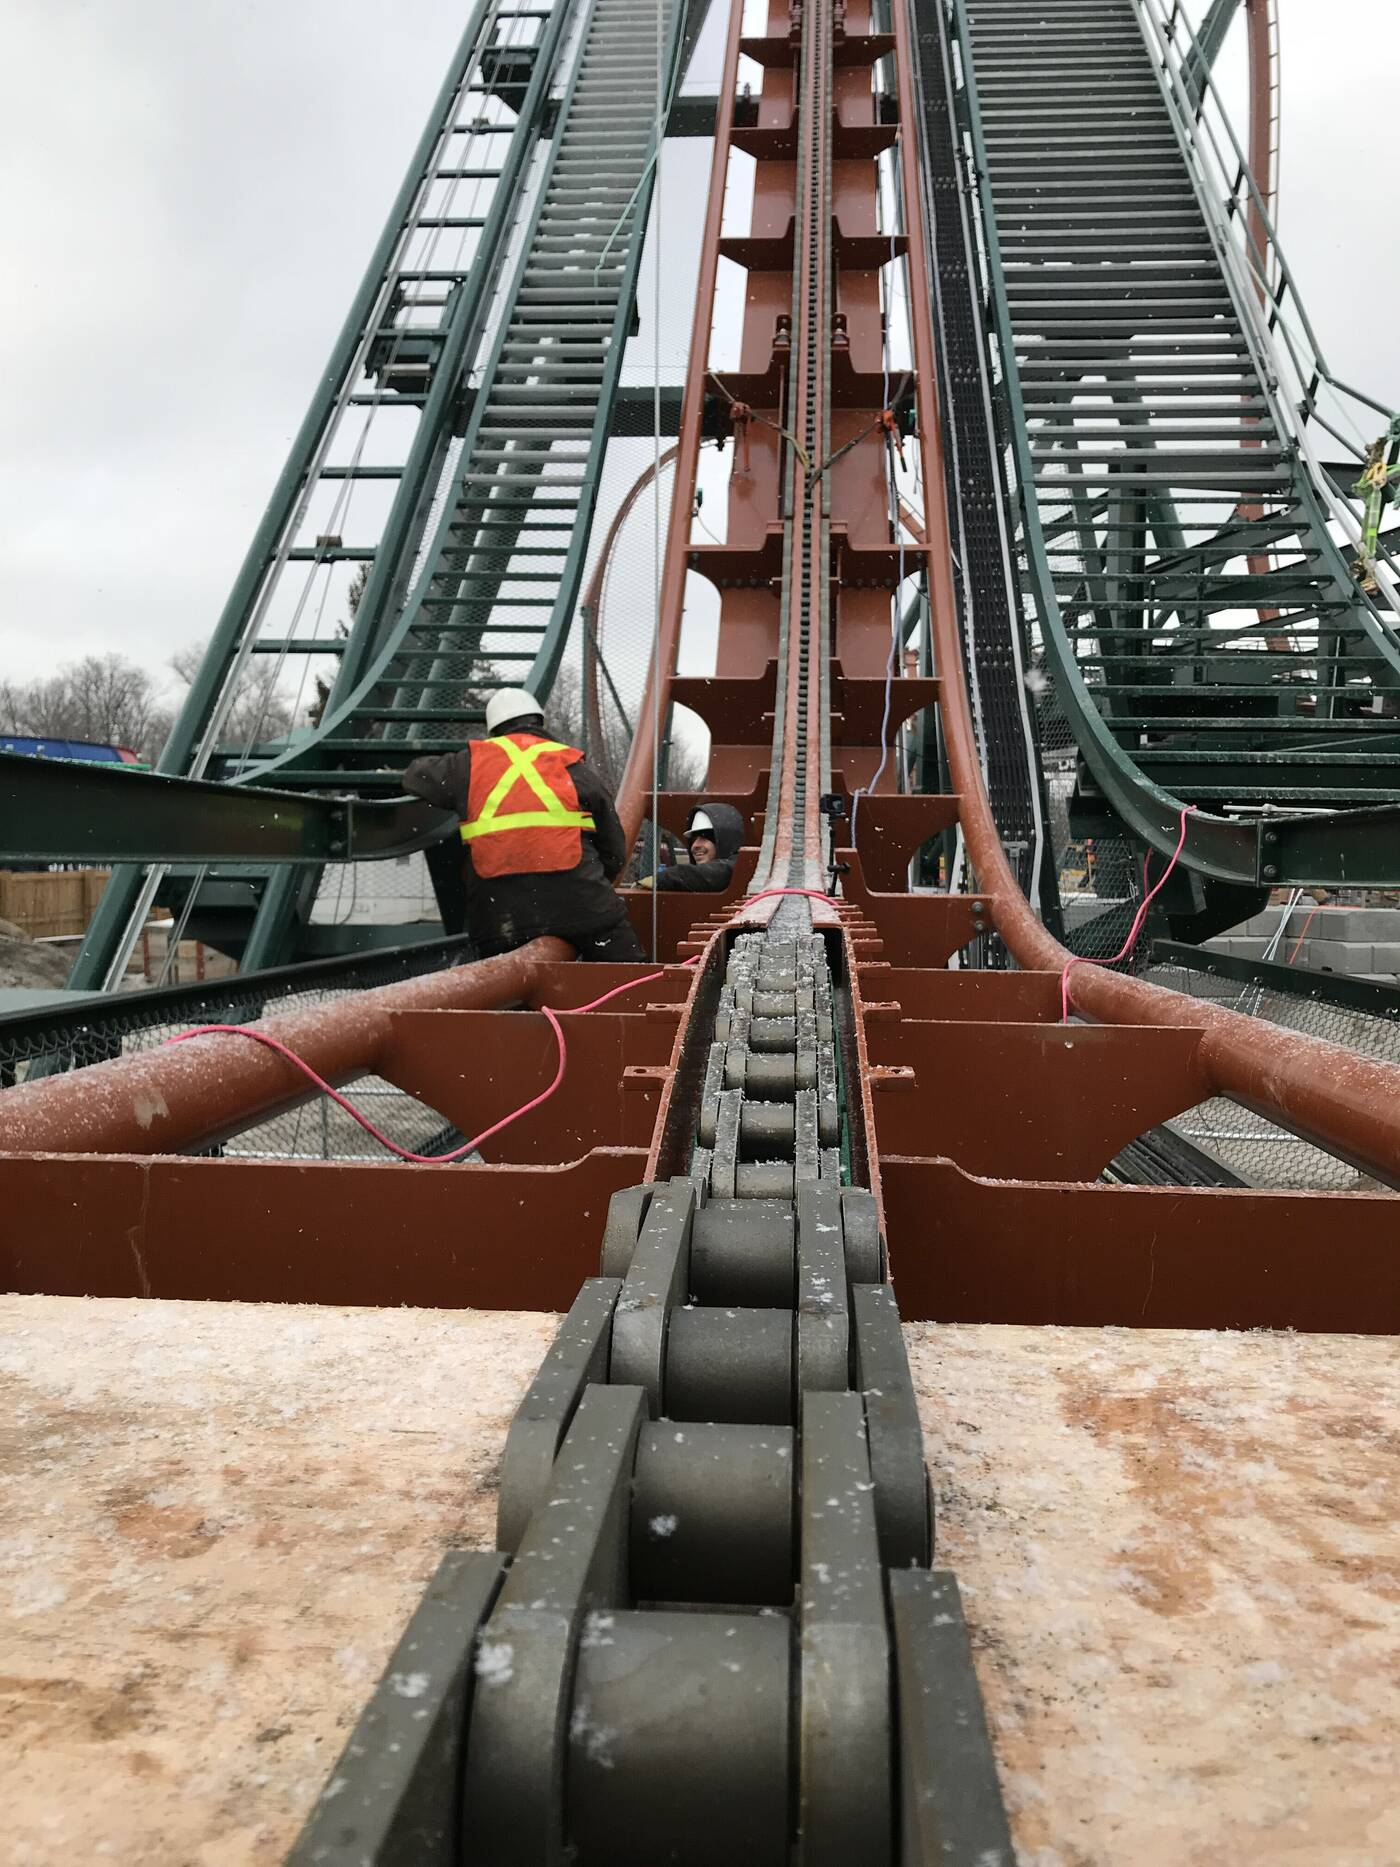 yukon striker wonderland